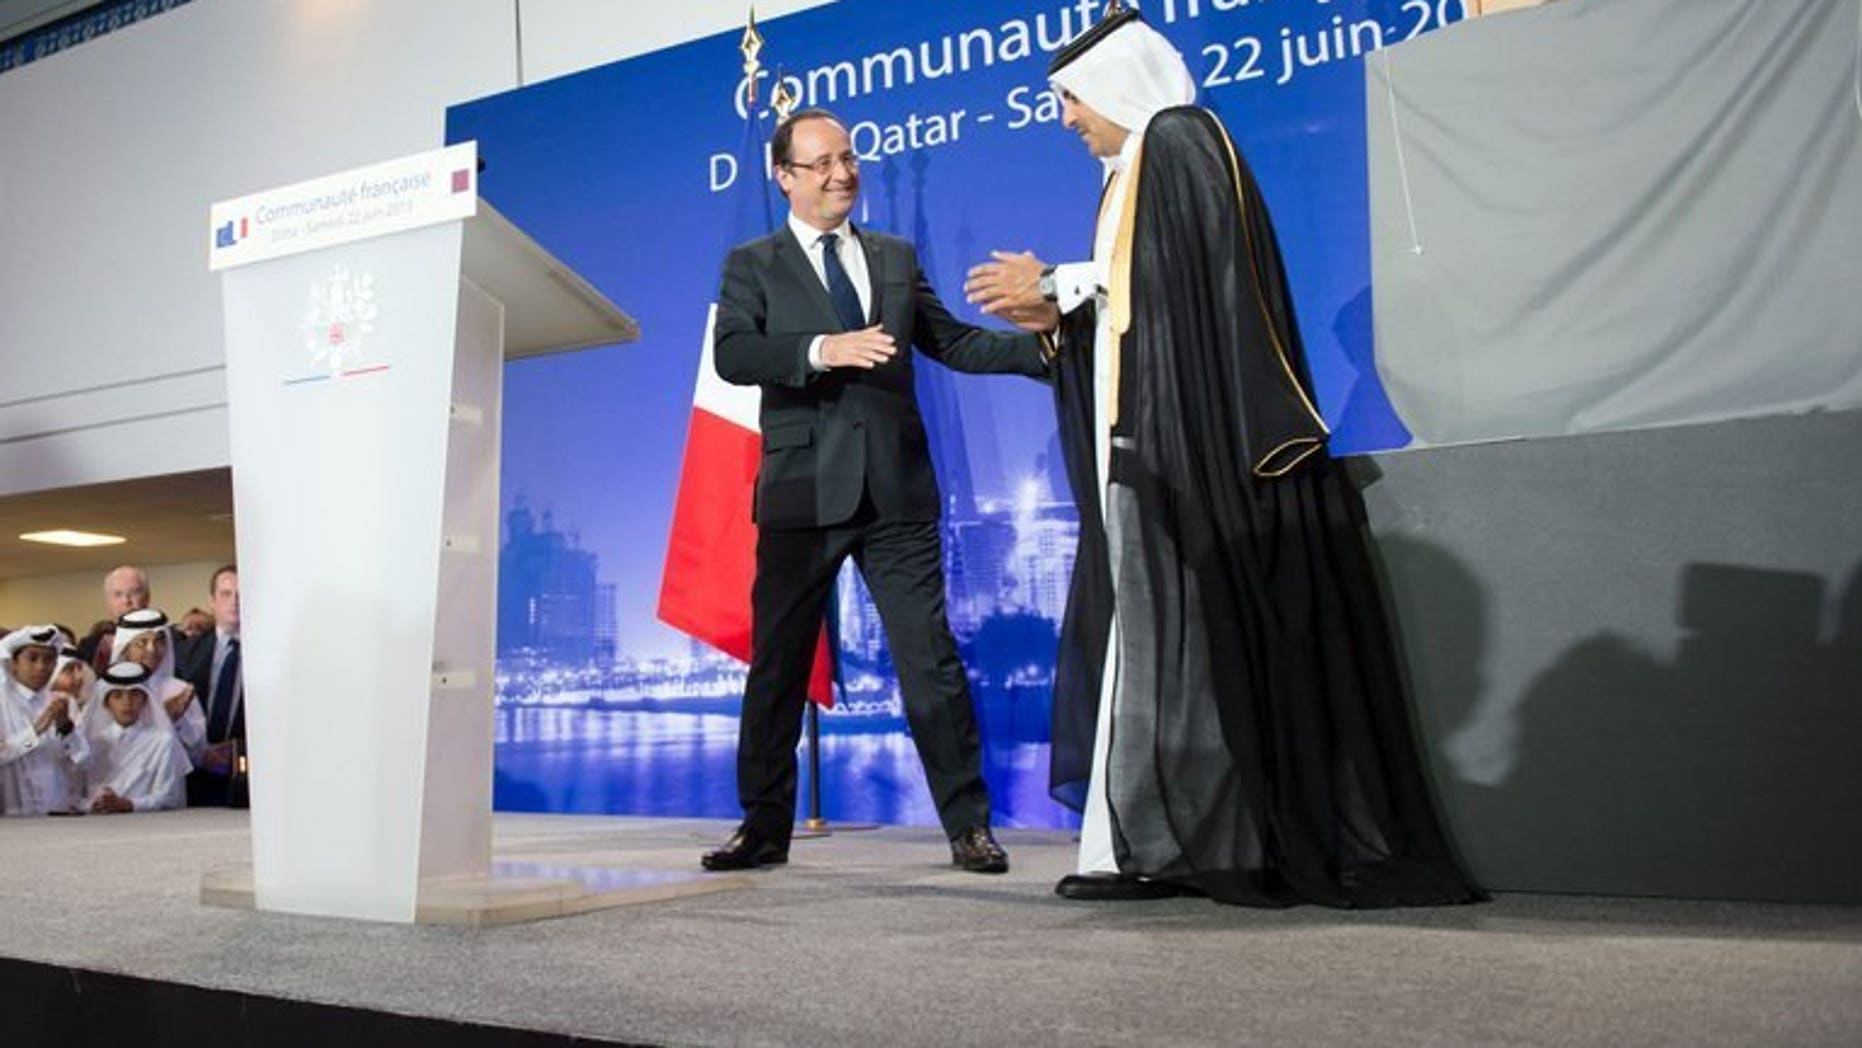 France's President Francois Hollande (L) is congratulated by Qatar's Attorney General Ali bin Mohsen bin Fetais al-Marri (R), in Doha, June 22, 2013. Hollande arrived in Qatar for talks on the deadly Syrian conflict and economic ties with the gas-rich Gulf state.